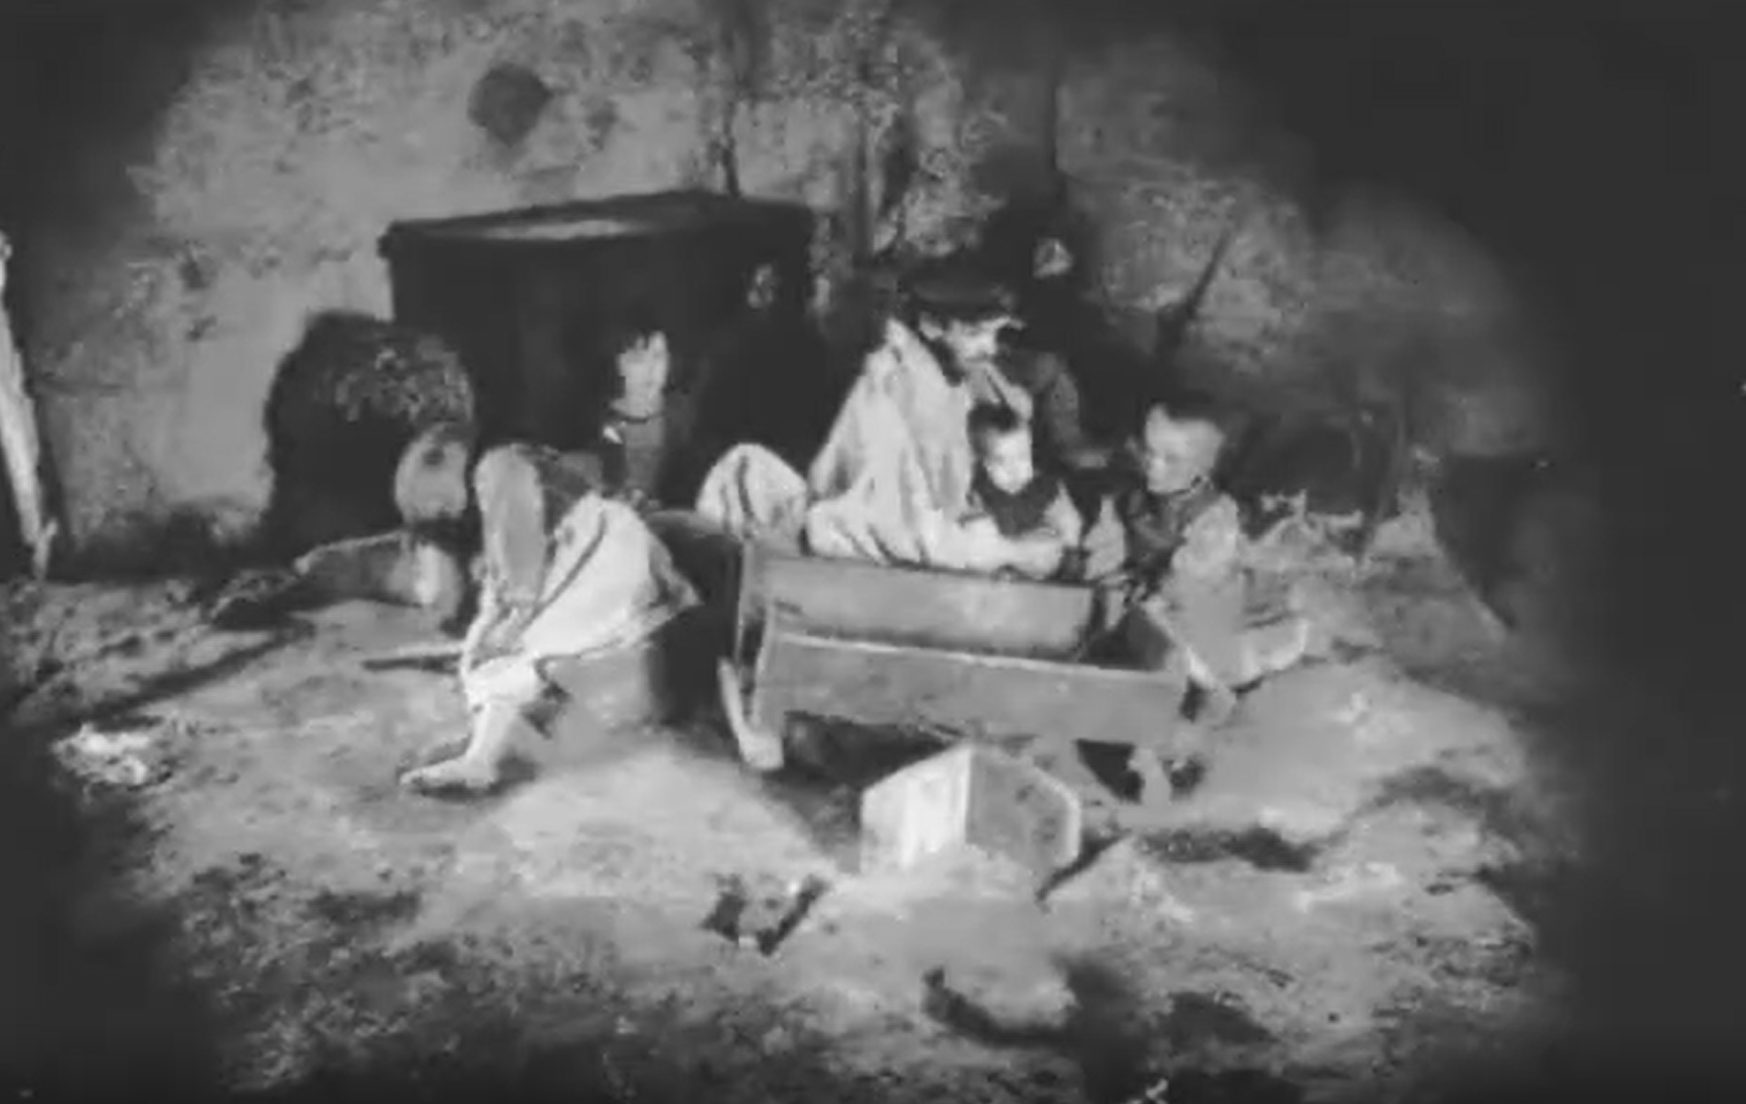 Black and white photo of a family sitting on the dirt floor of a hovel, sad, downtrodden.